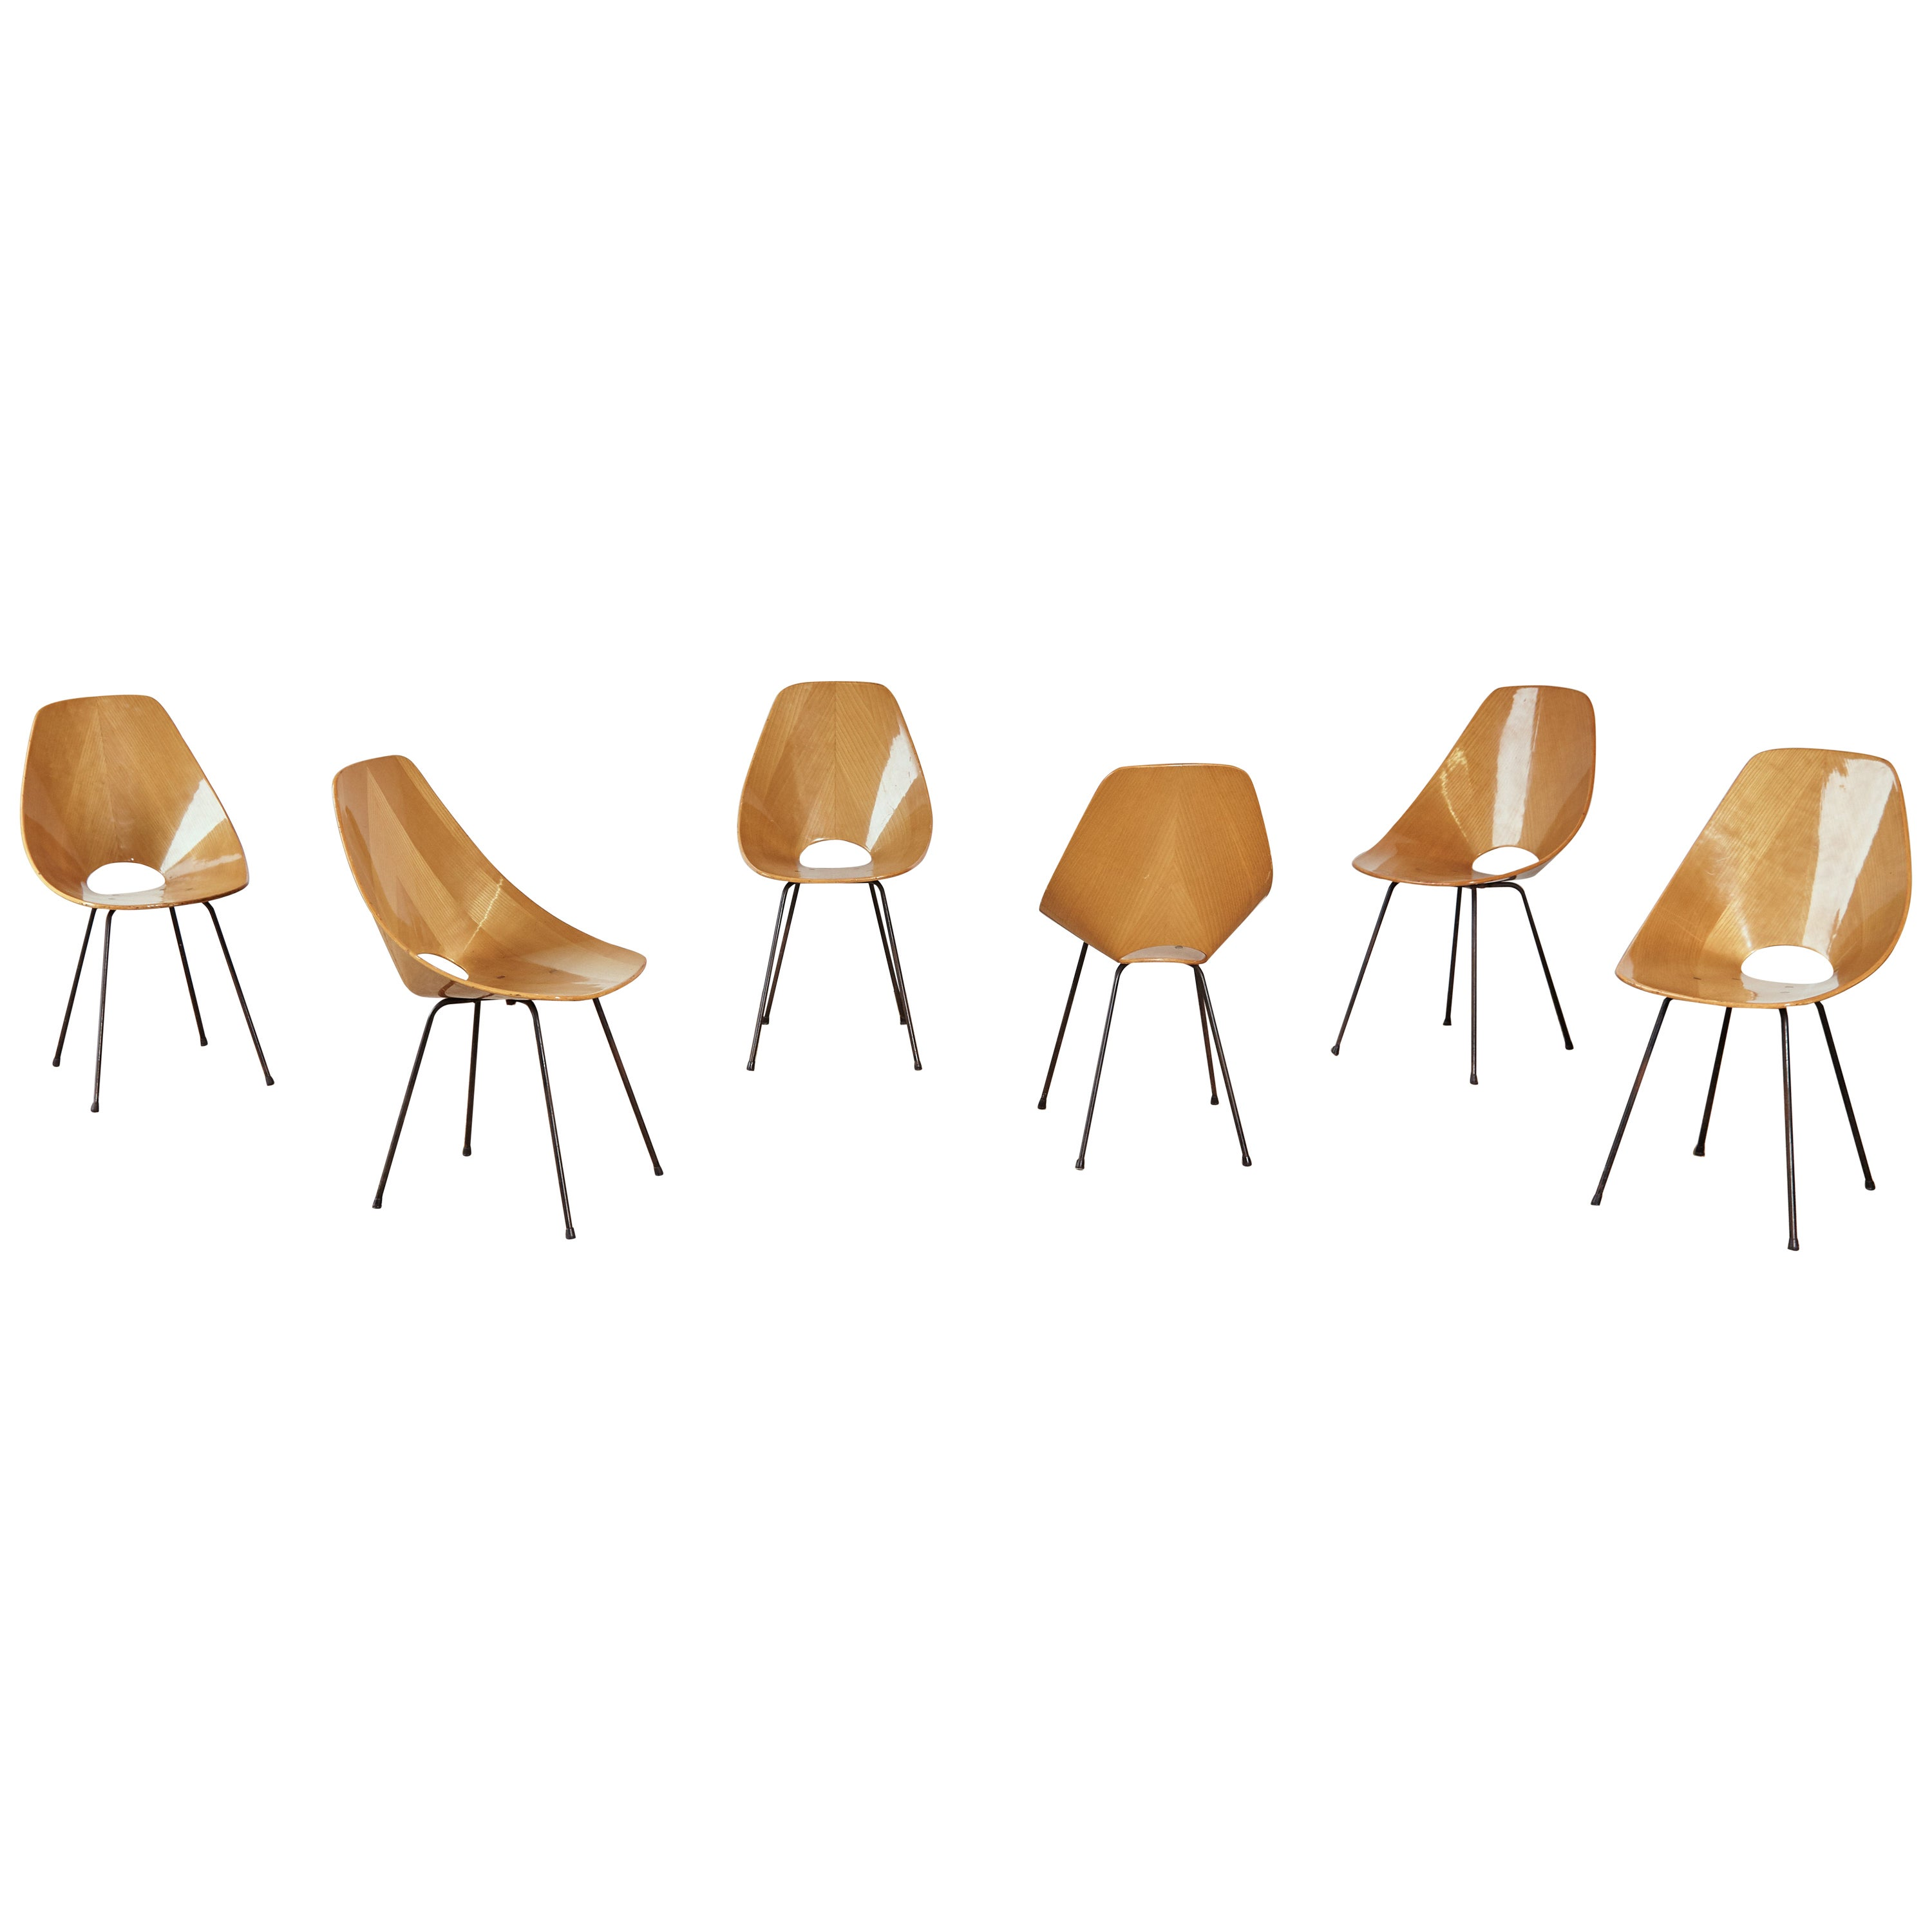 Set of Six Medea Chairs by Vittorio Nobili, Fratelli Tagliabue, Italy, 1950s